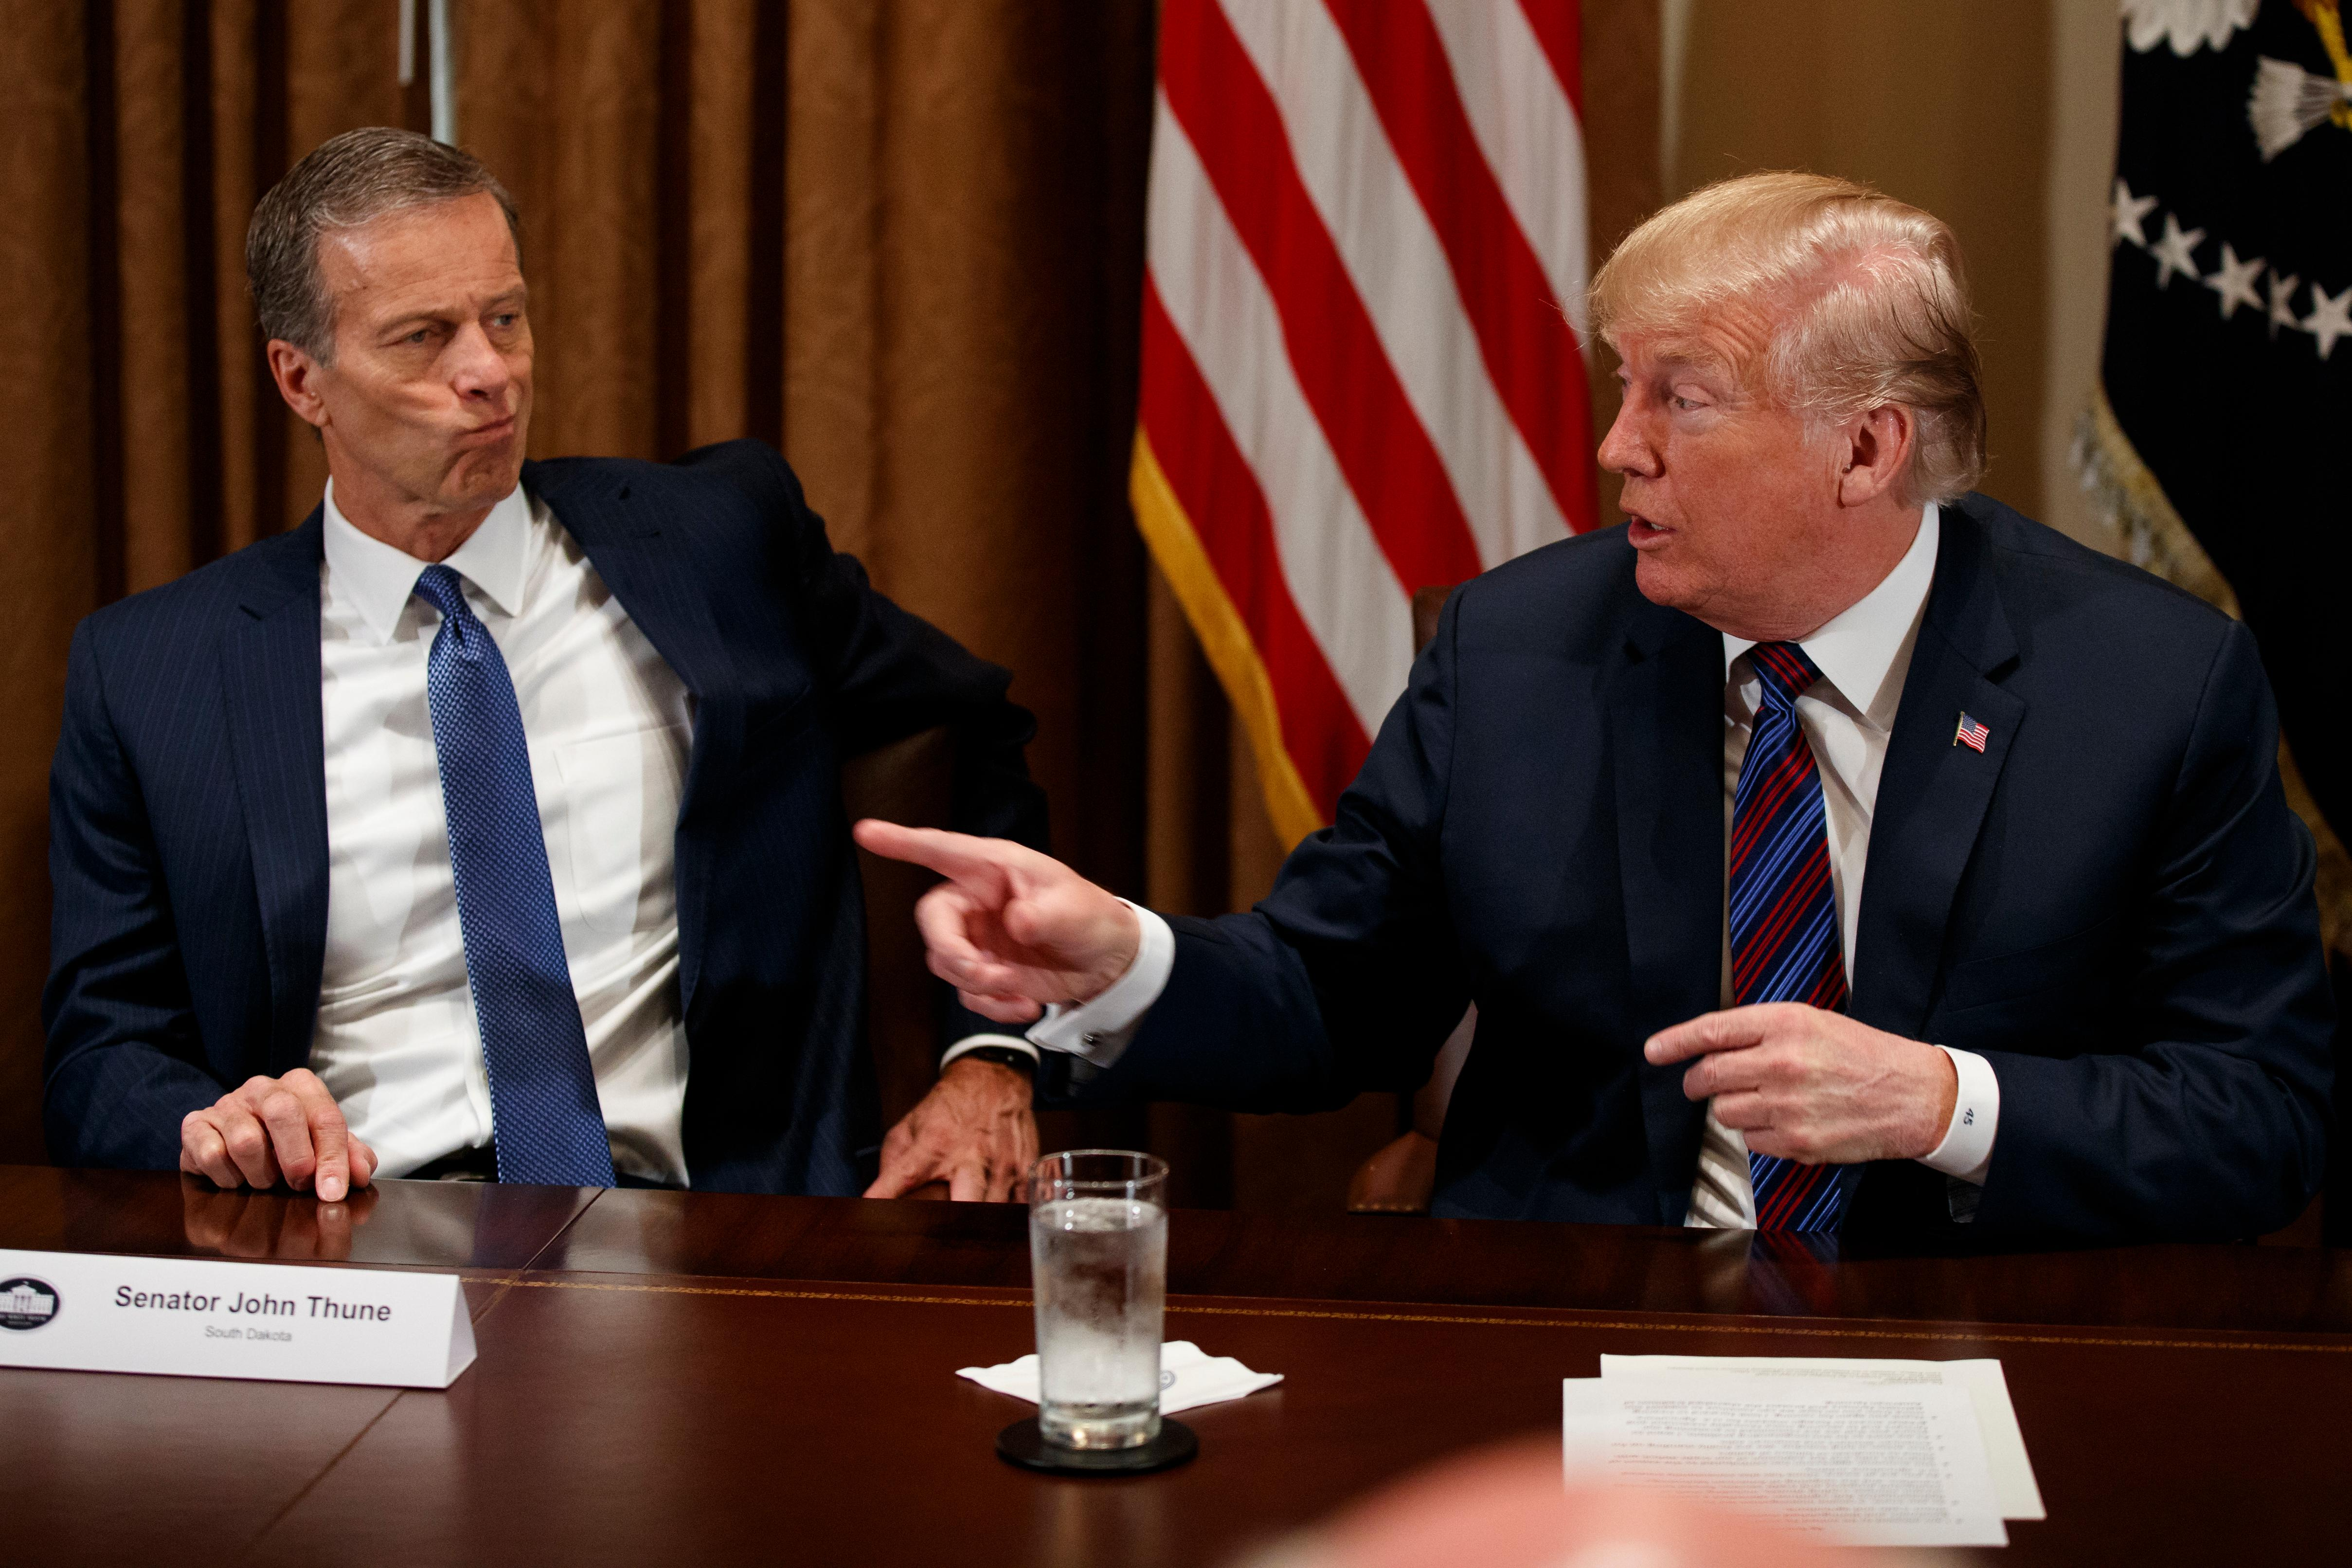 Sen. John Thune, R-S.D., listens as President Donald Trump speaks during a meeting with governors and lawmakers in the Cabinet Room of the White House, Thursday, April 12, 2018, in Washington. (AP Photo/Evan Vucci)